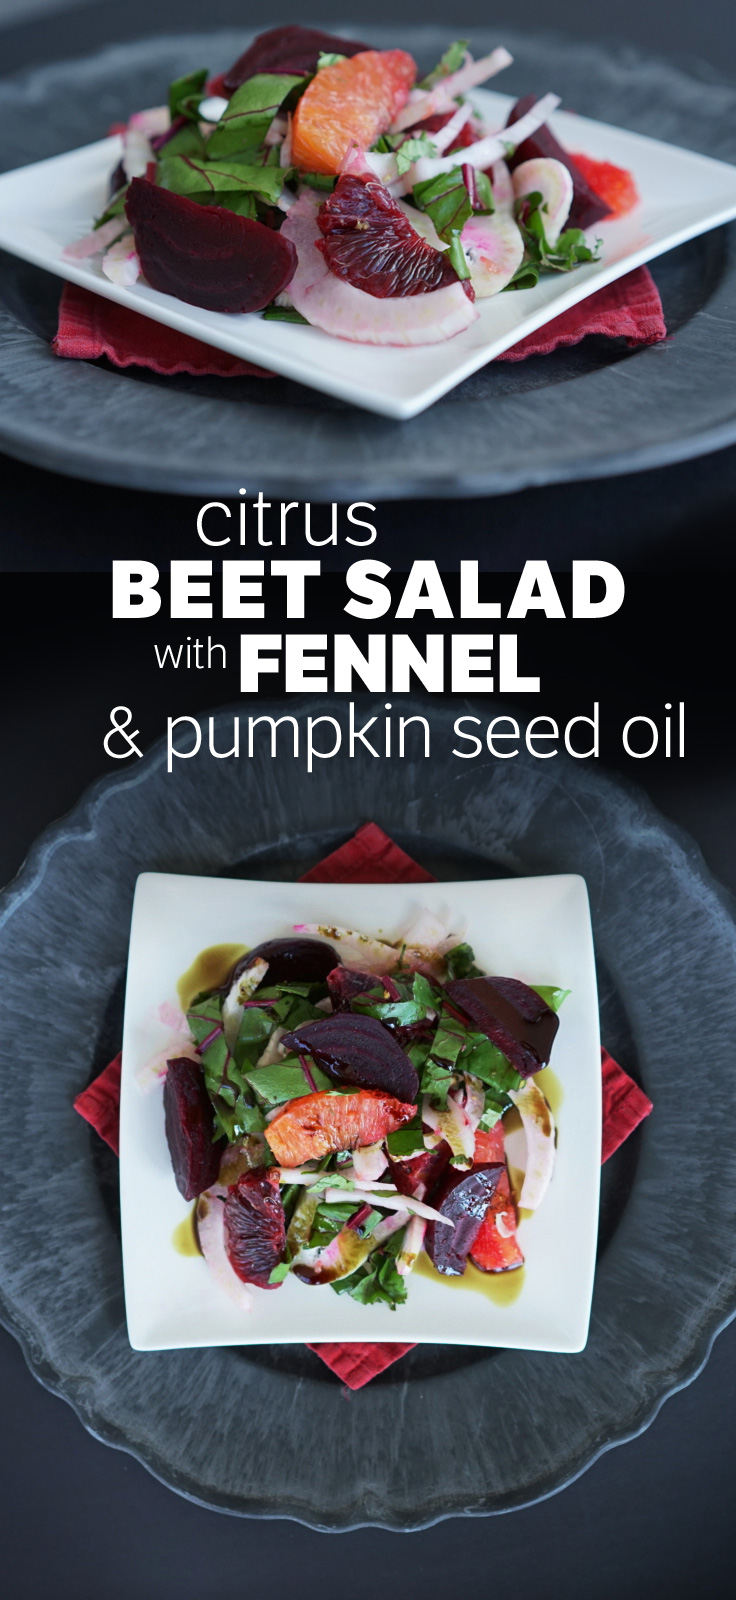 Citrus Beet Fennel Pumpkin Seed Oil Salad